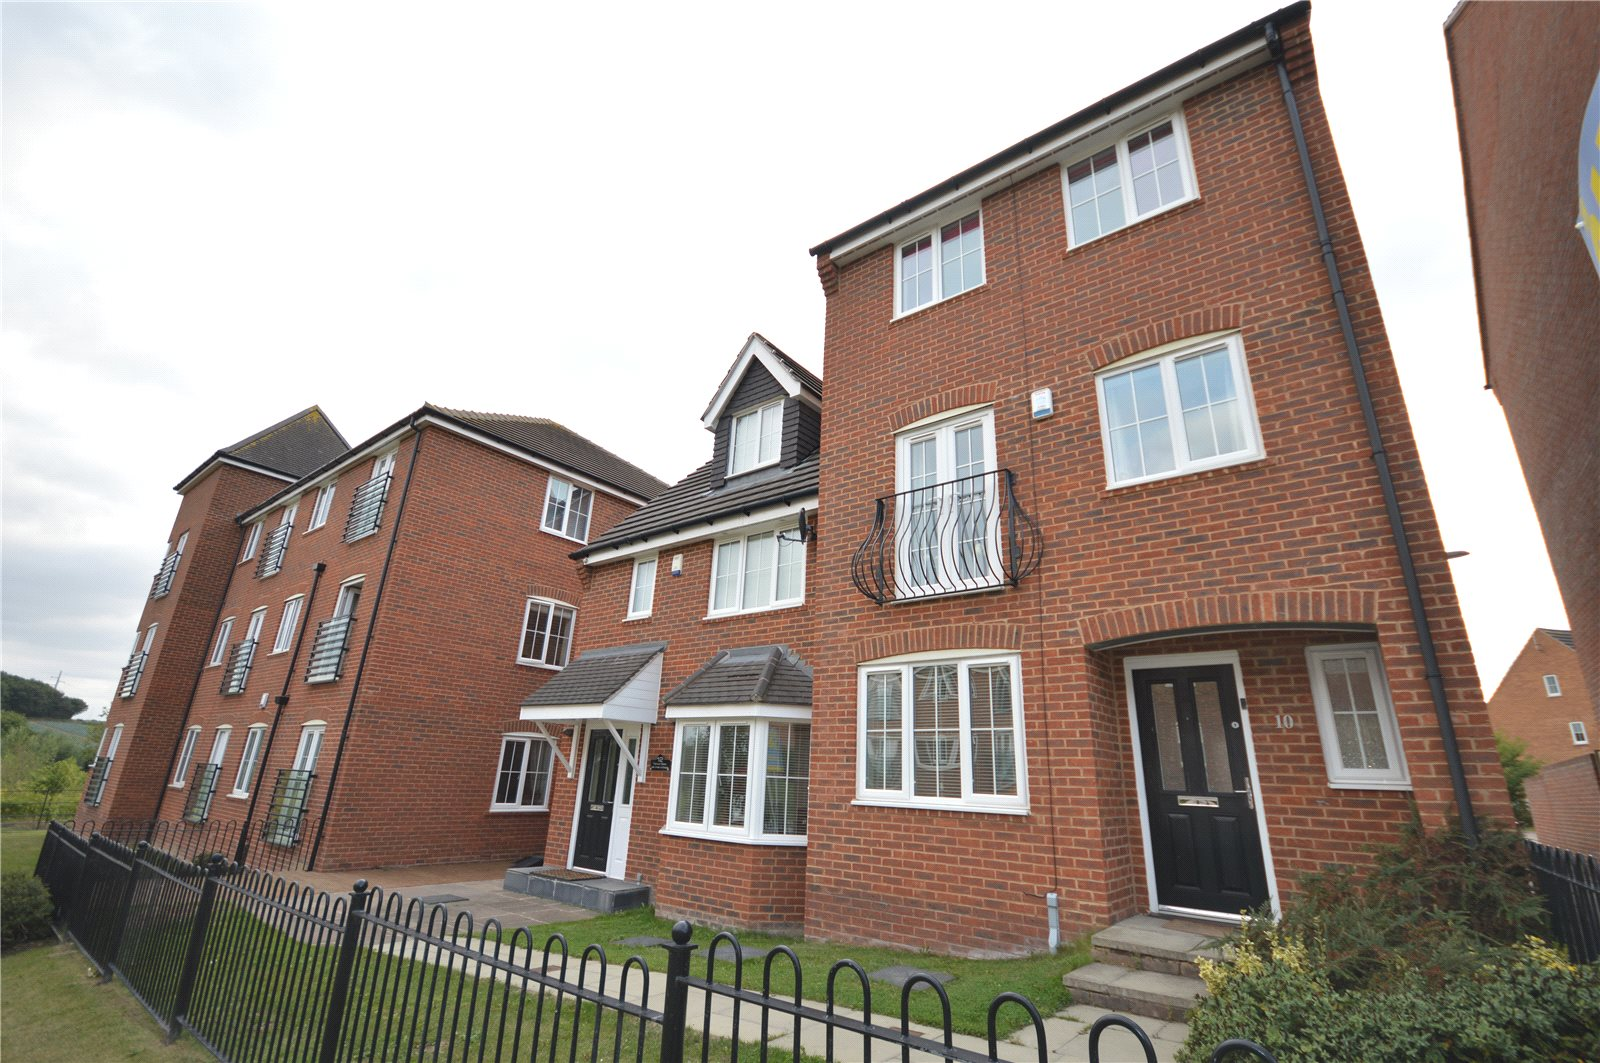 Property for sale in Beeston, exterior